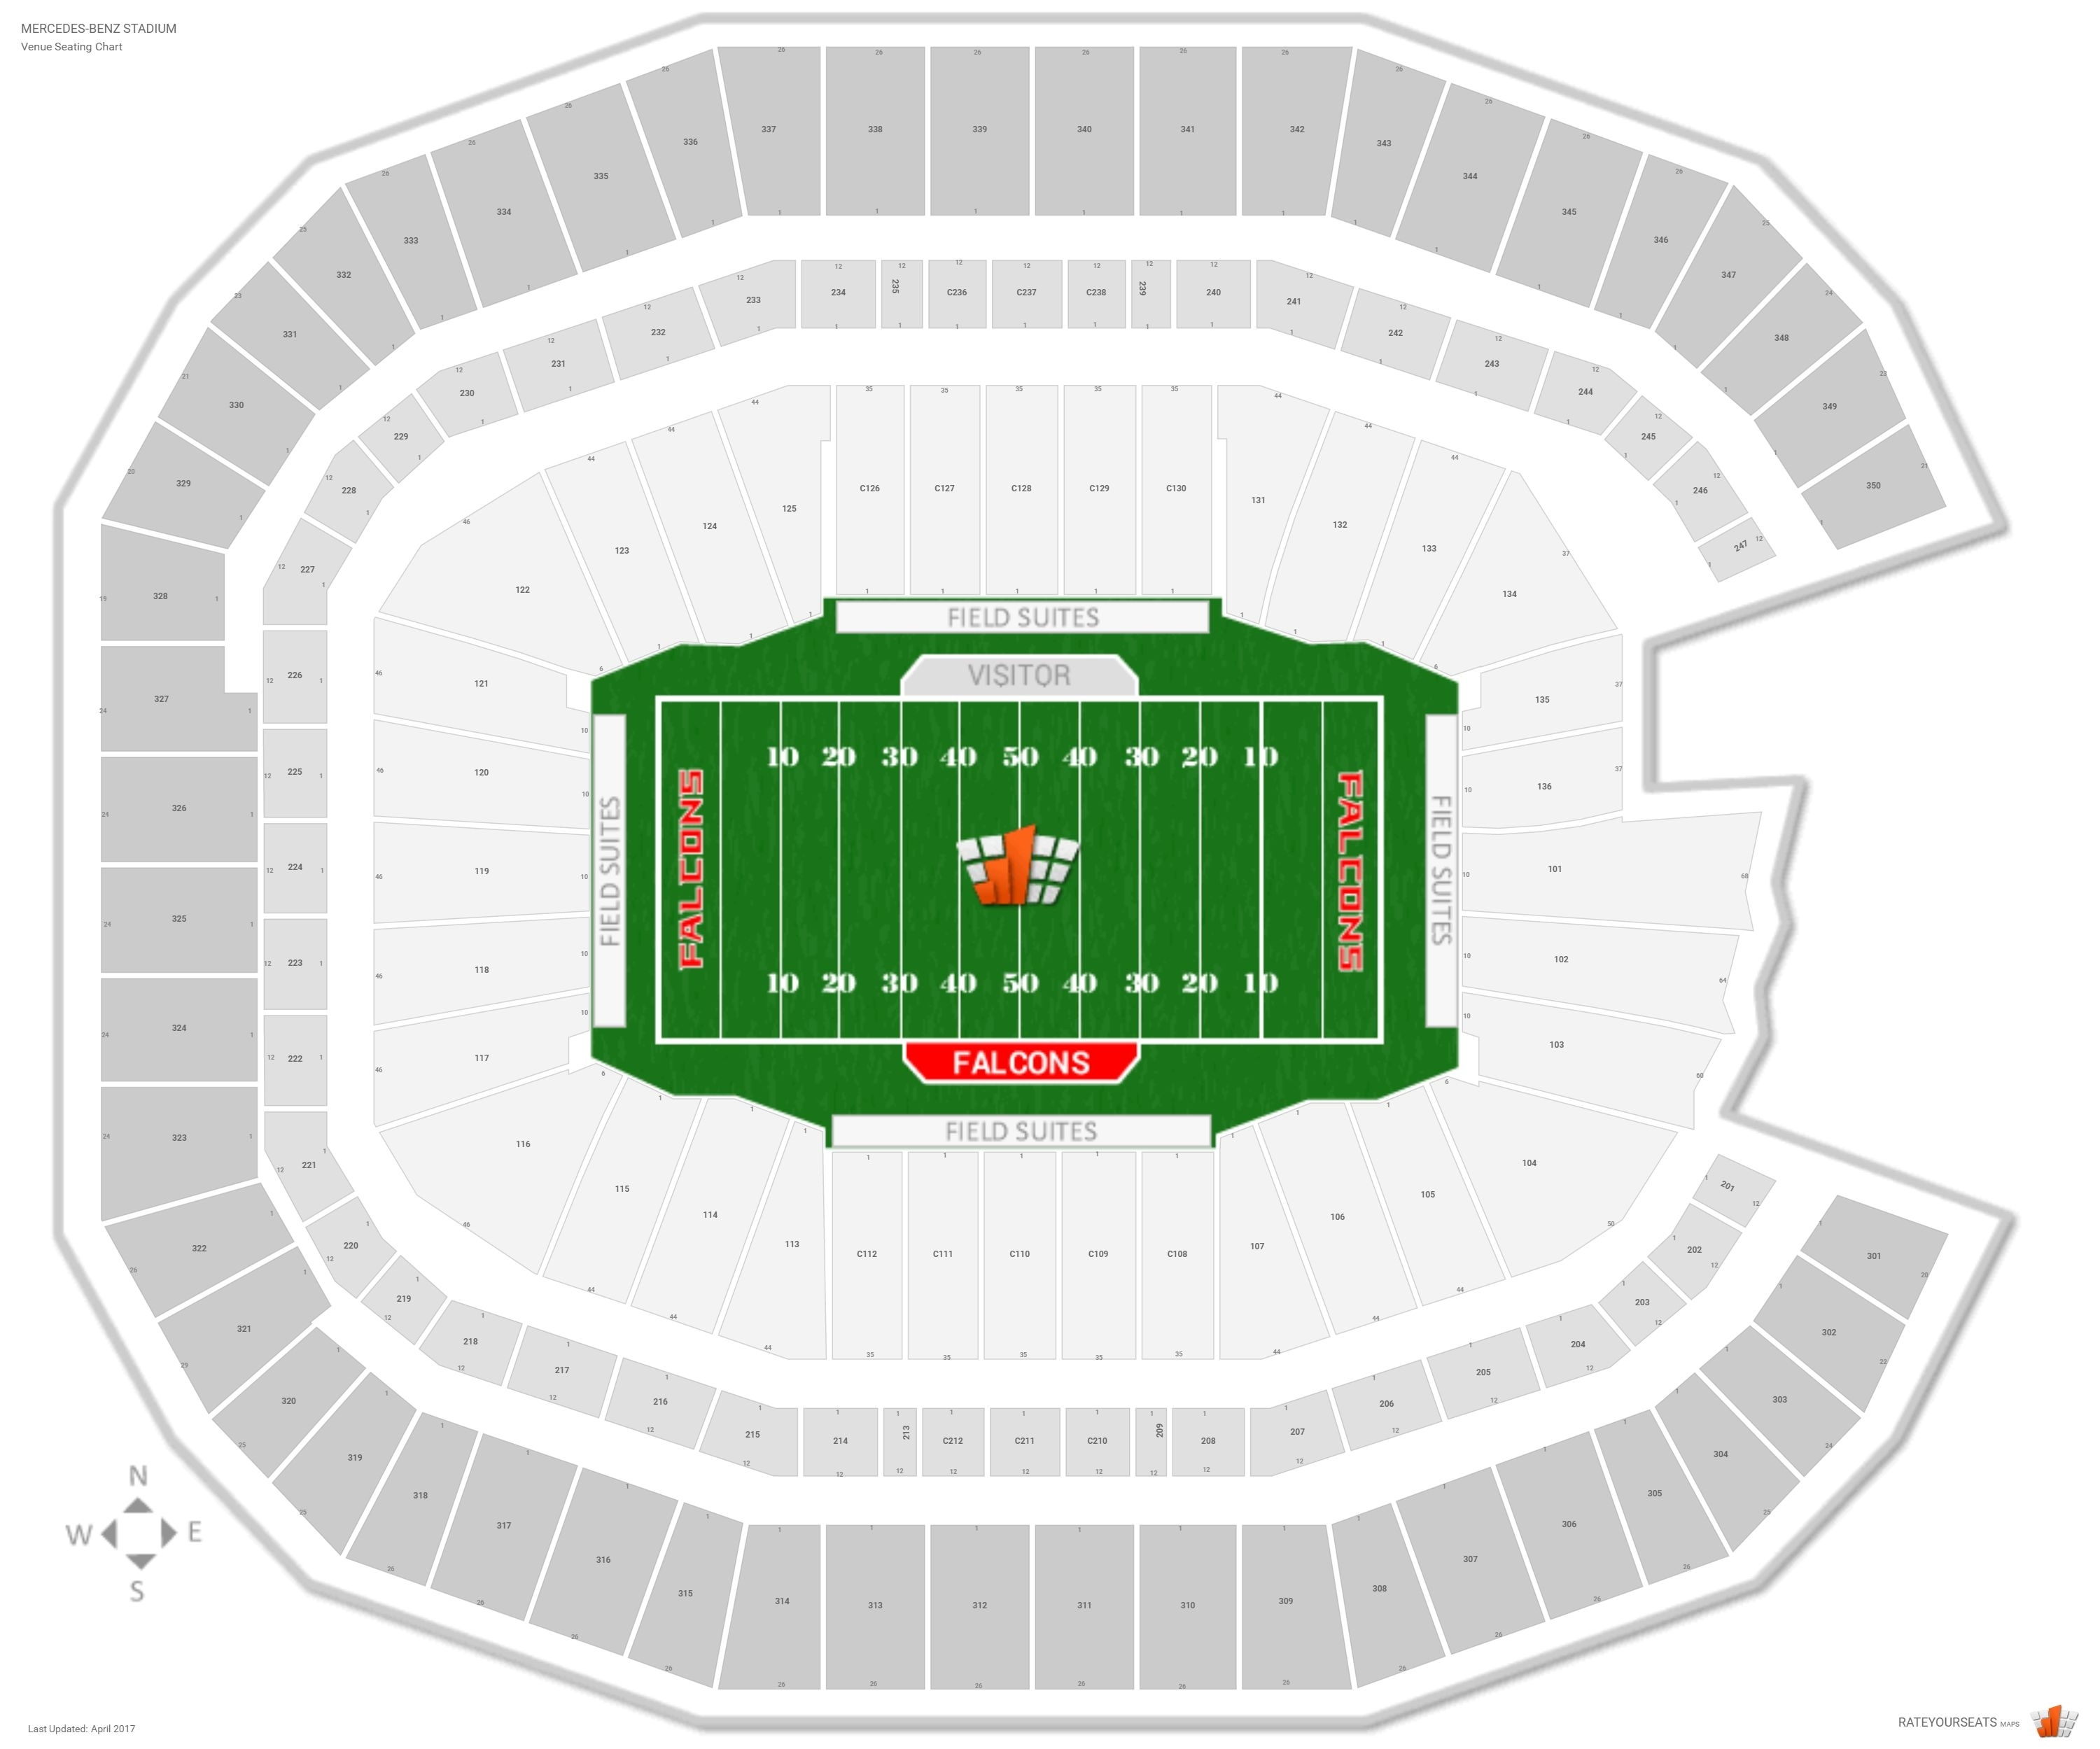 Atlanta Falcons Seating Guide - Mercedes-Benz Stadium with Super Bowl Seating Chart Seat Numbers